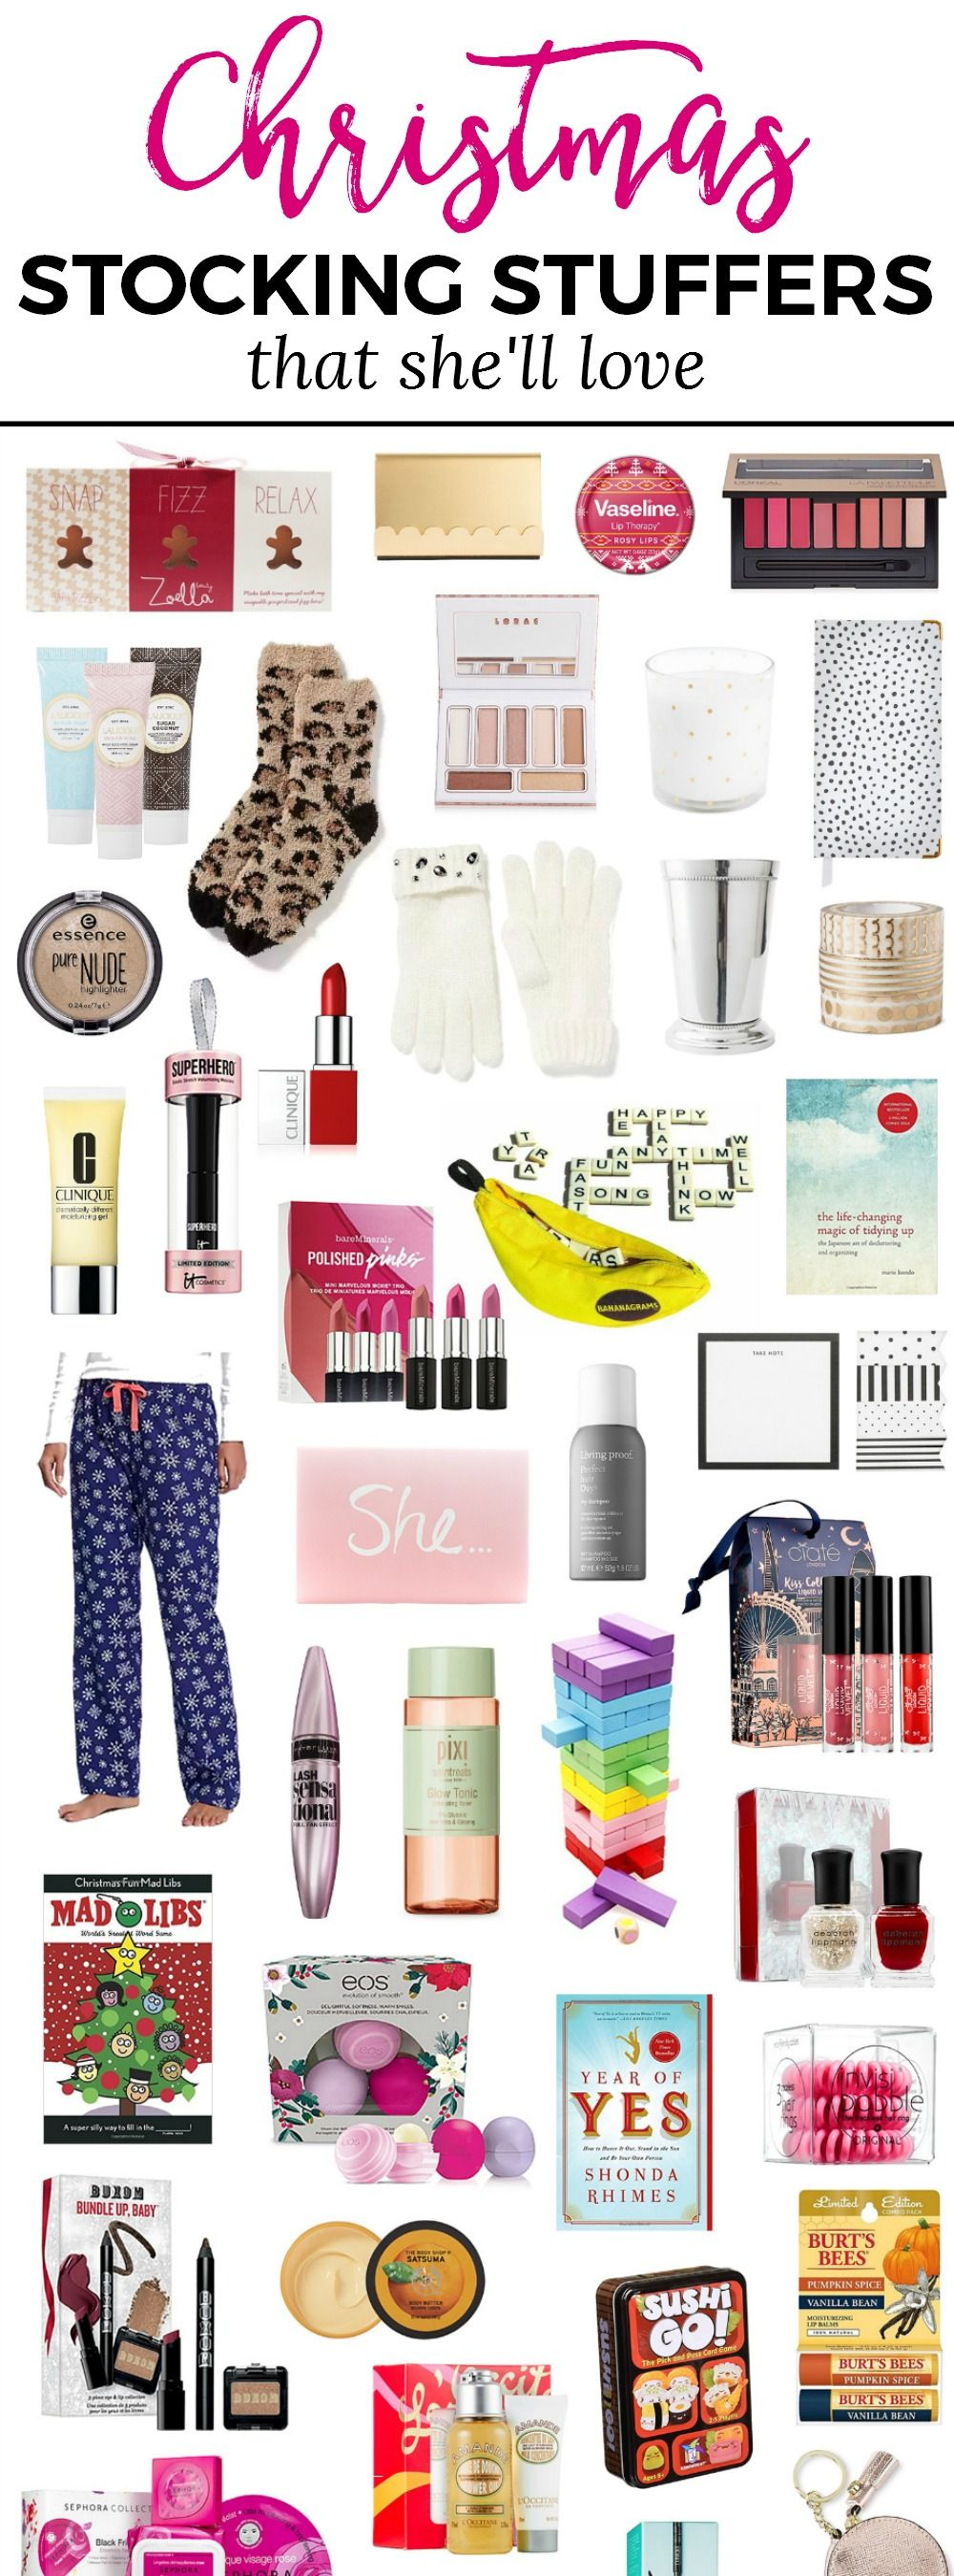 Womens Christmas Gifts.The Best Christmas Stocking Stuffer Ideas For Women